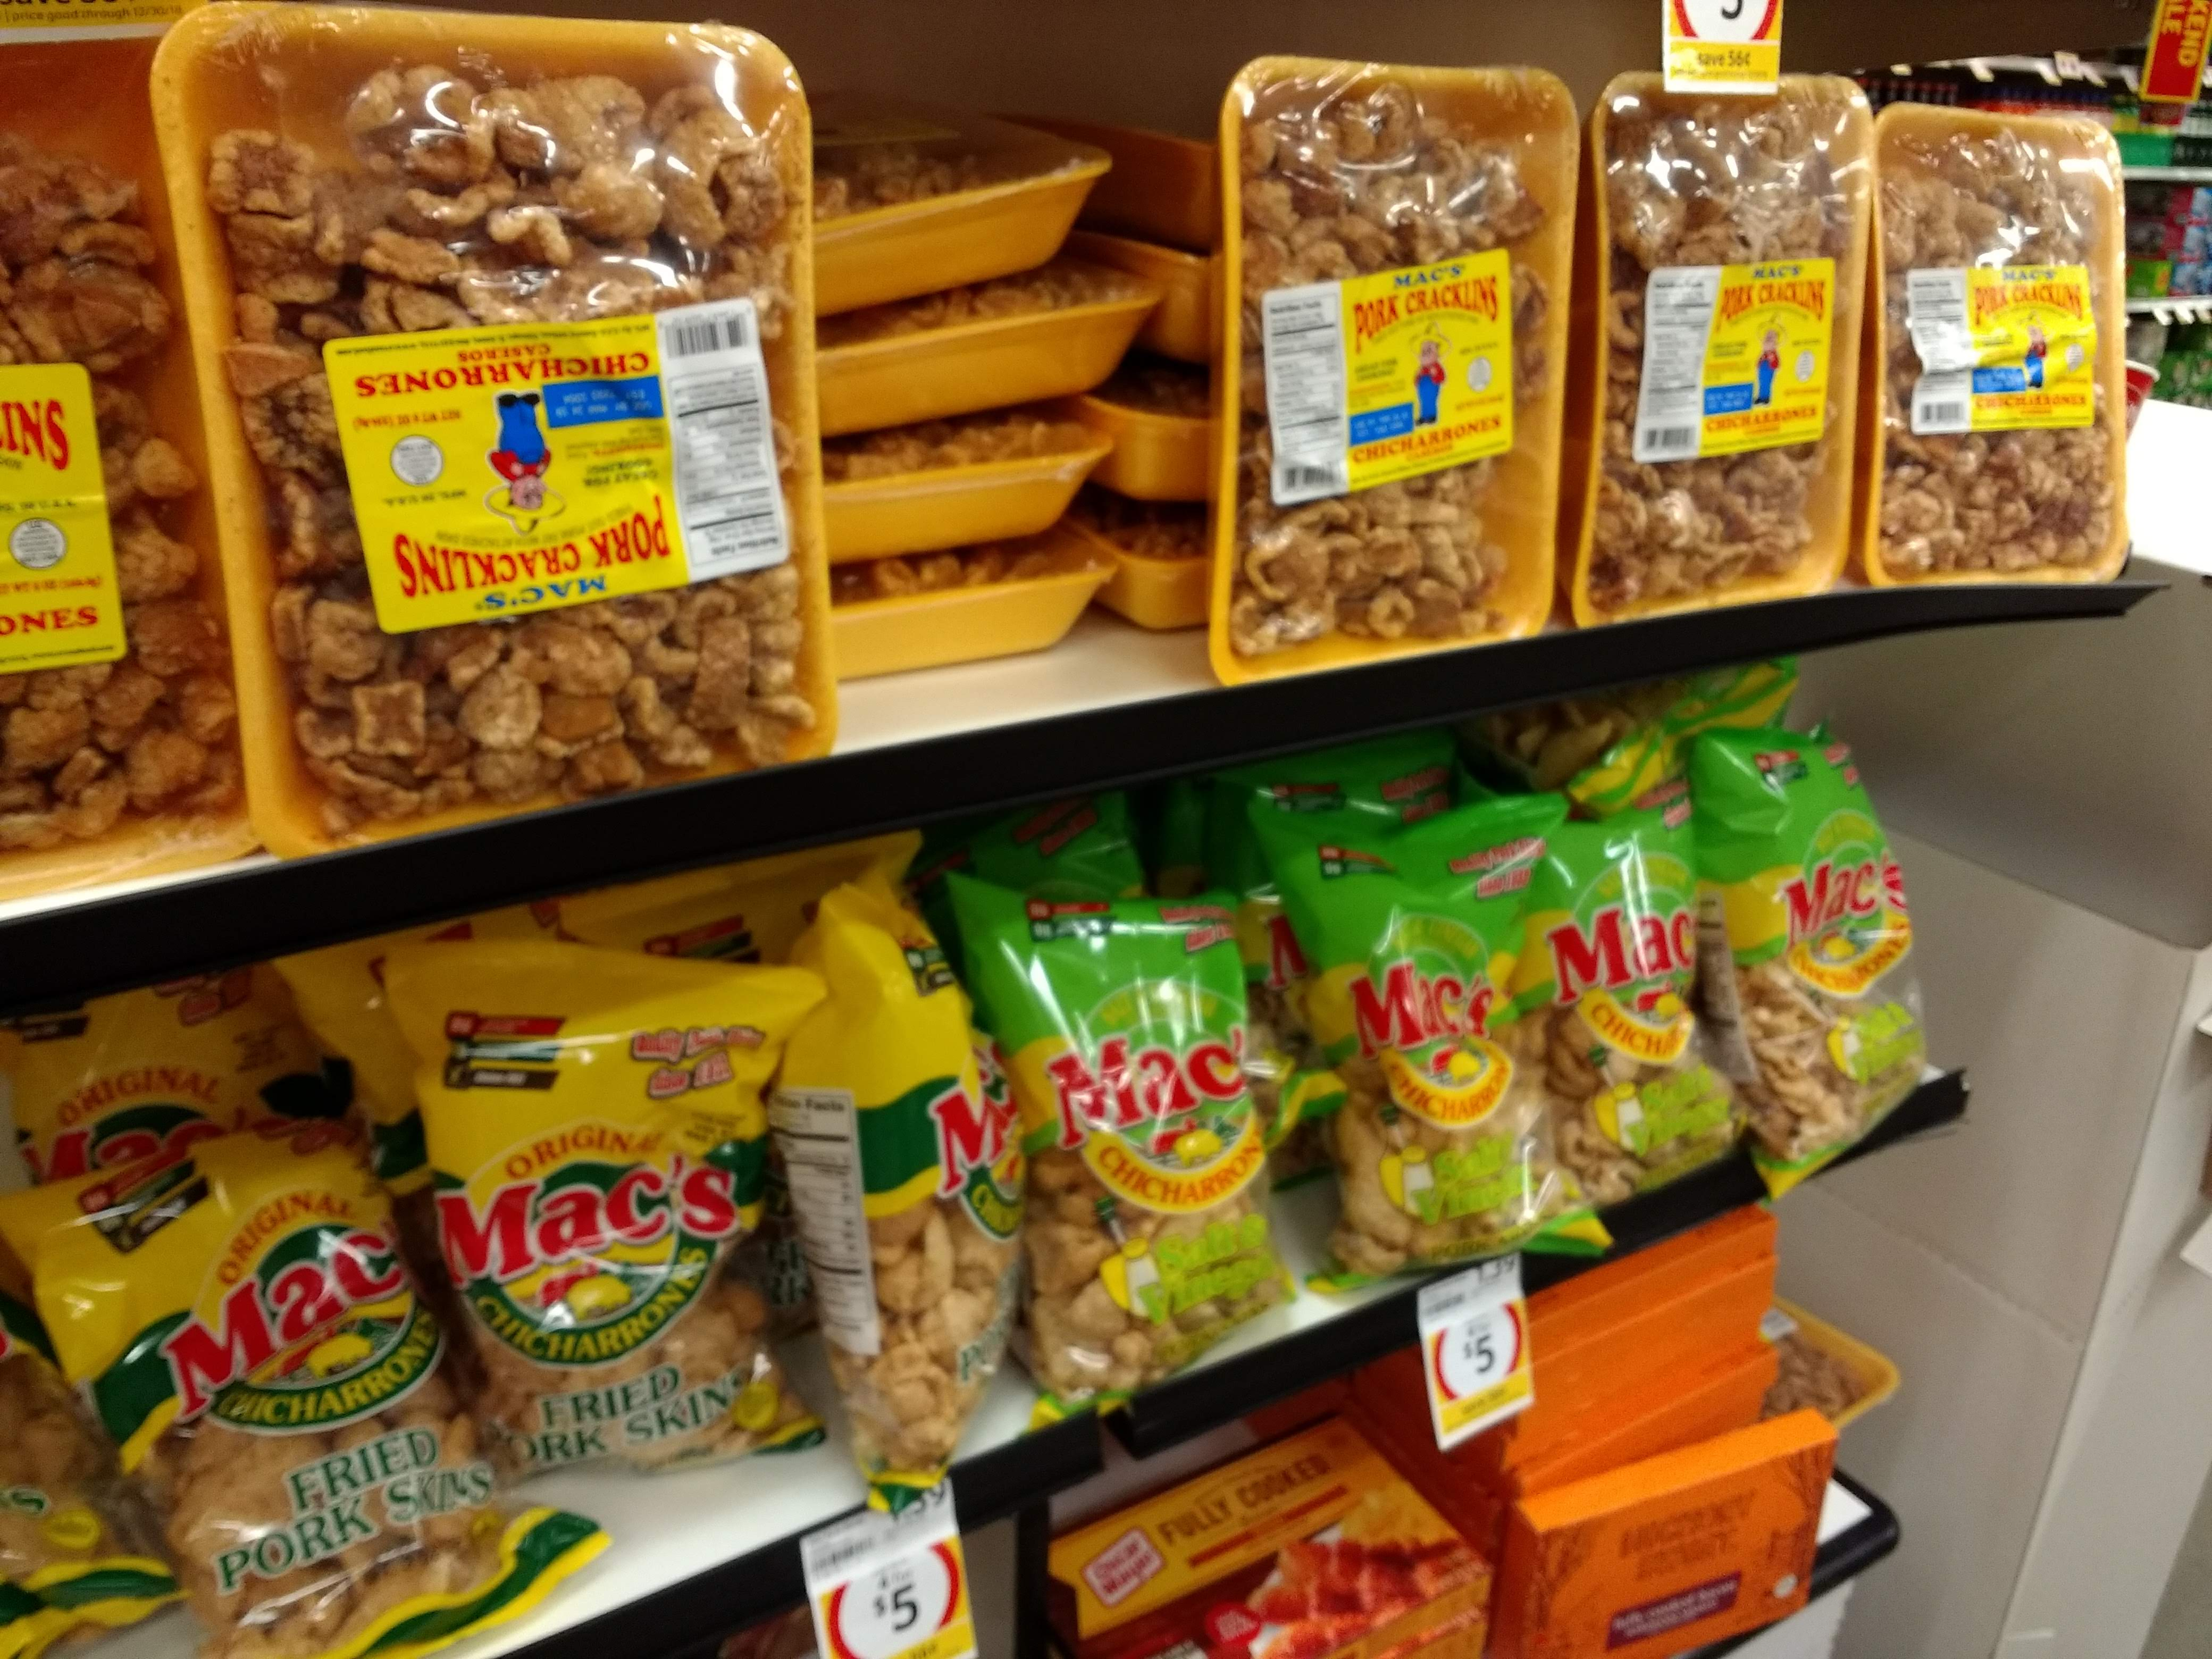 Packages of pork rinds